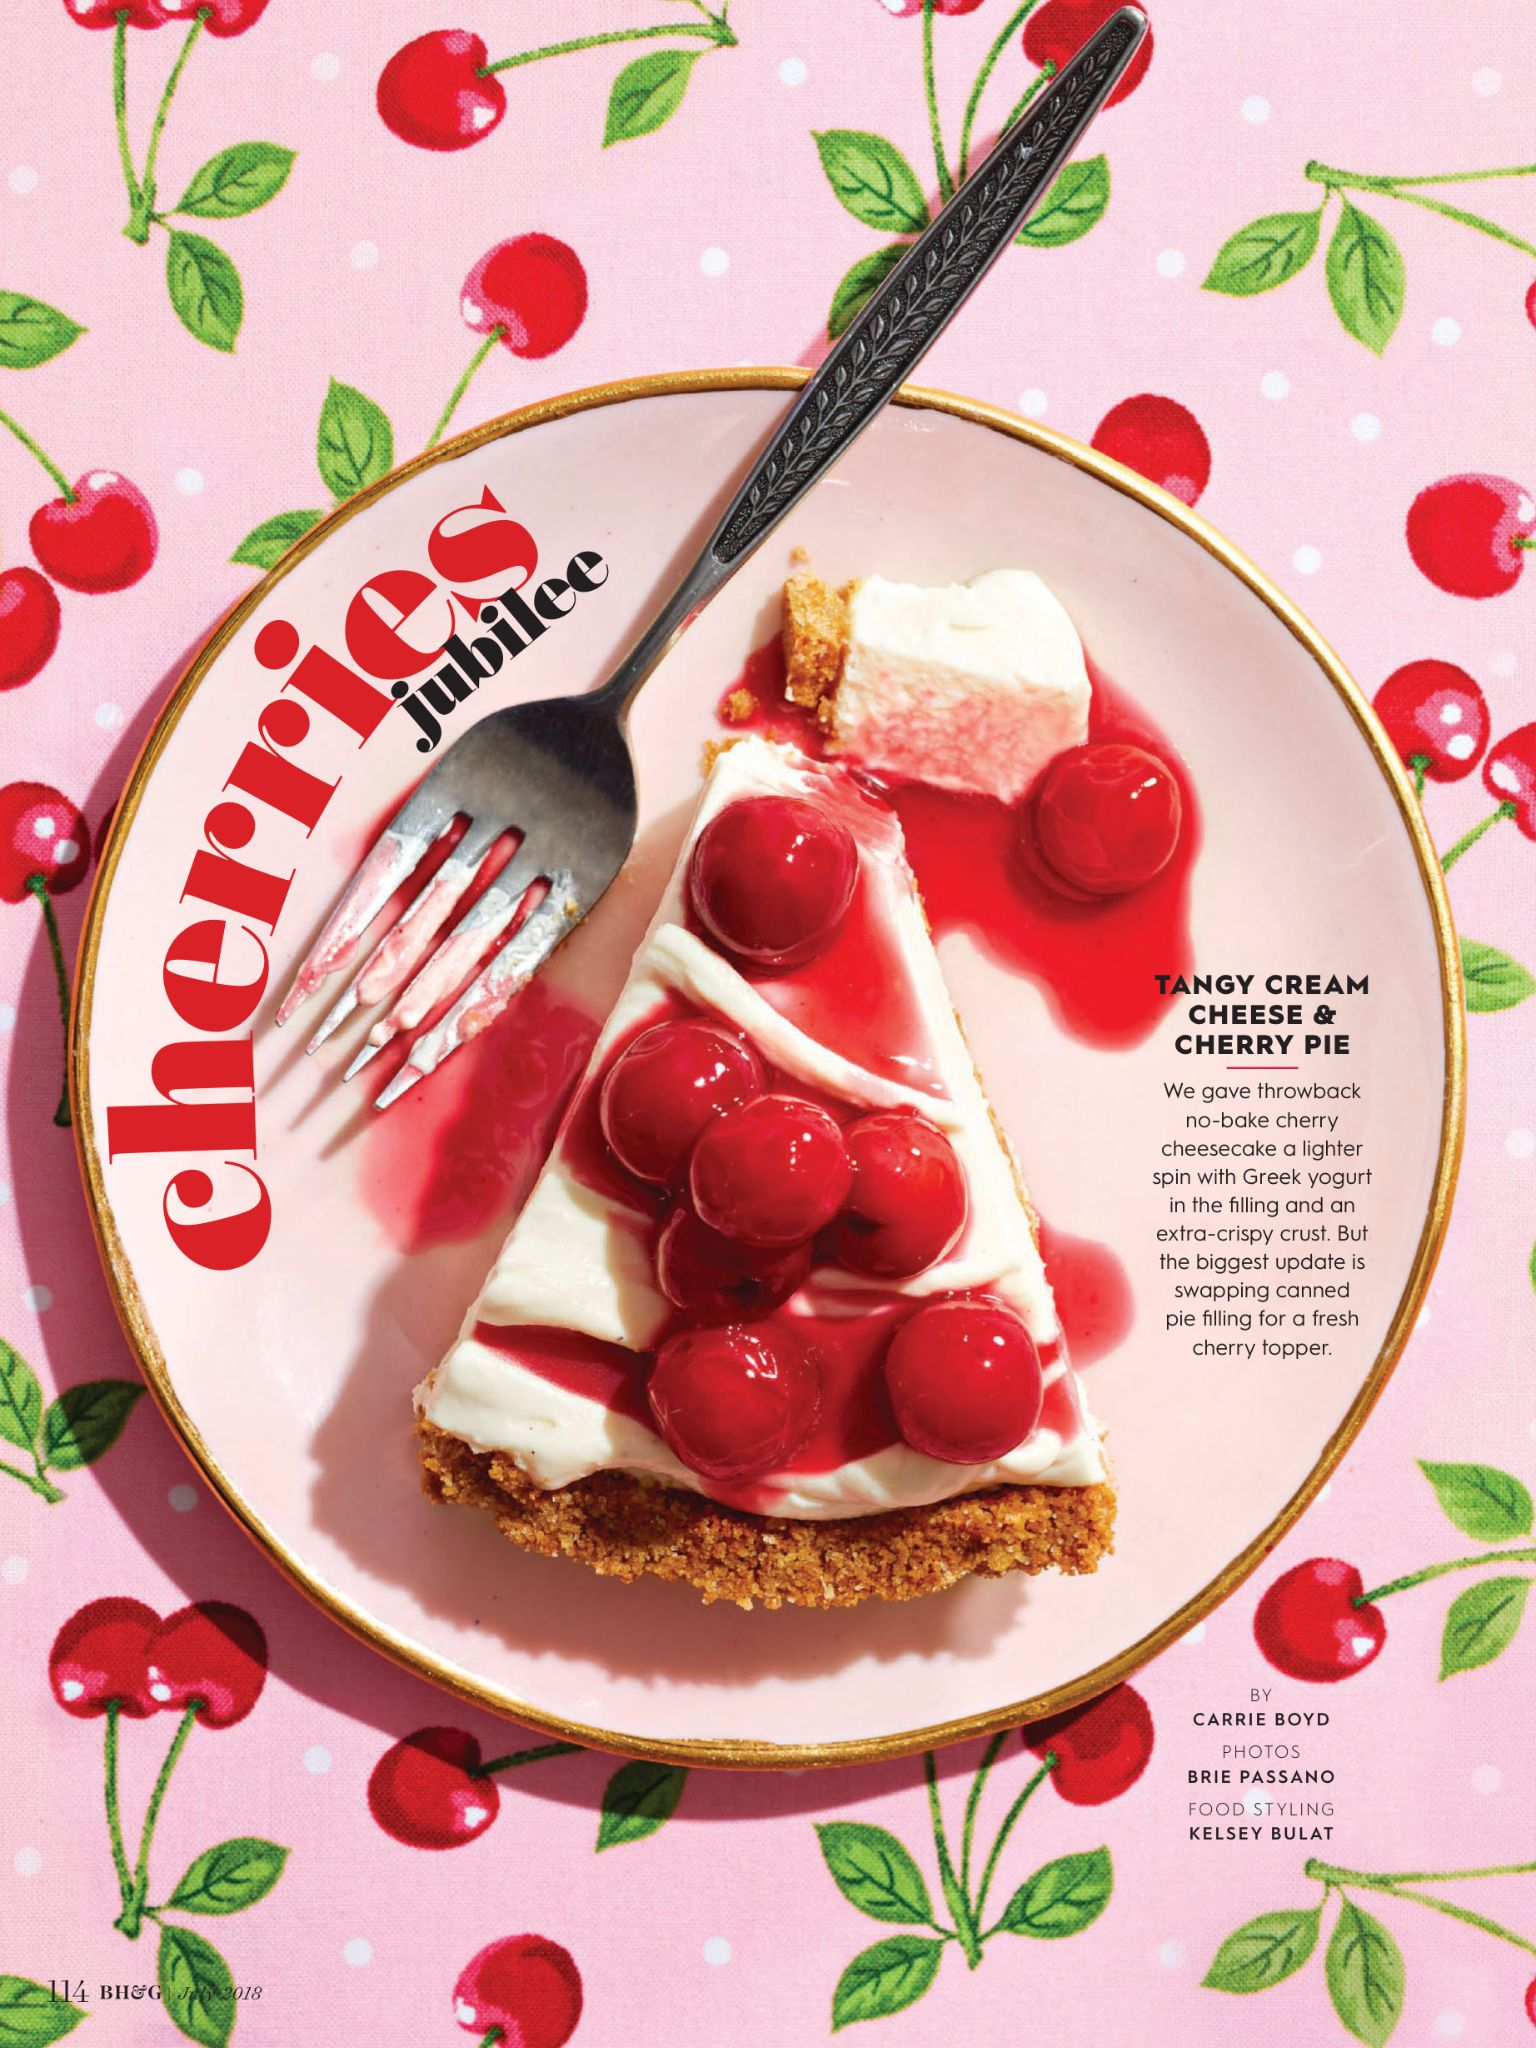 ccac544508a4484498624cb2a447f3a9 - Better Homes And Gardens Cherry Pie Recipe